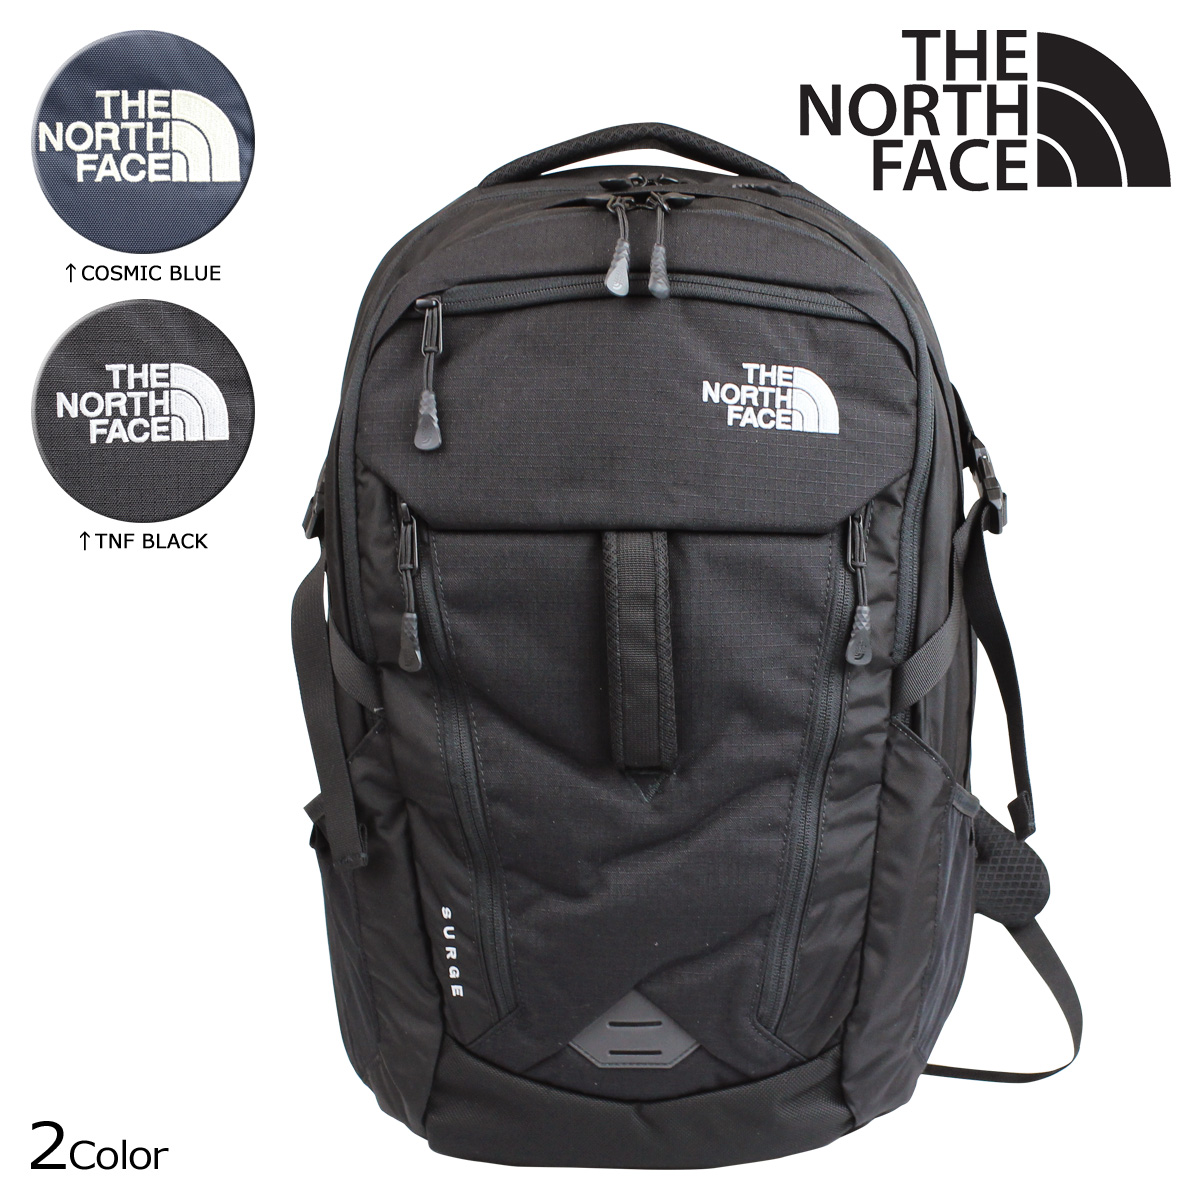 600e1dbcc1 Whats up Sports: THE NORTH FACE north face rucksack backpack SURGE BACKPACK  33L men women | Rakuten Global Market